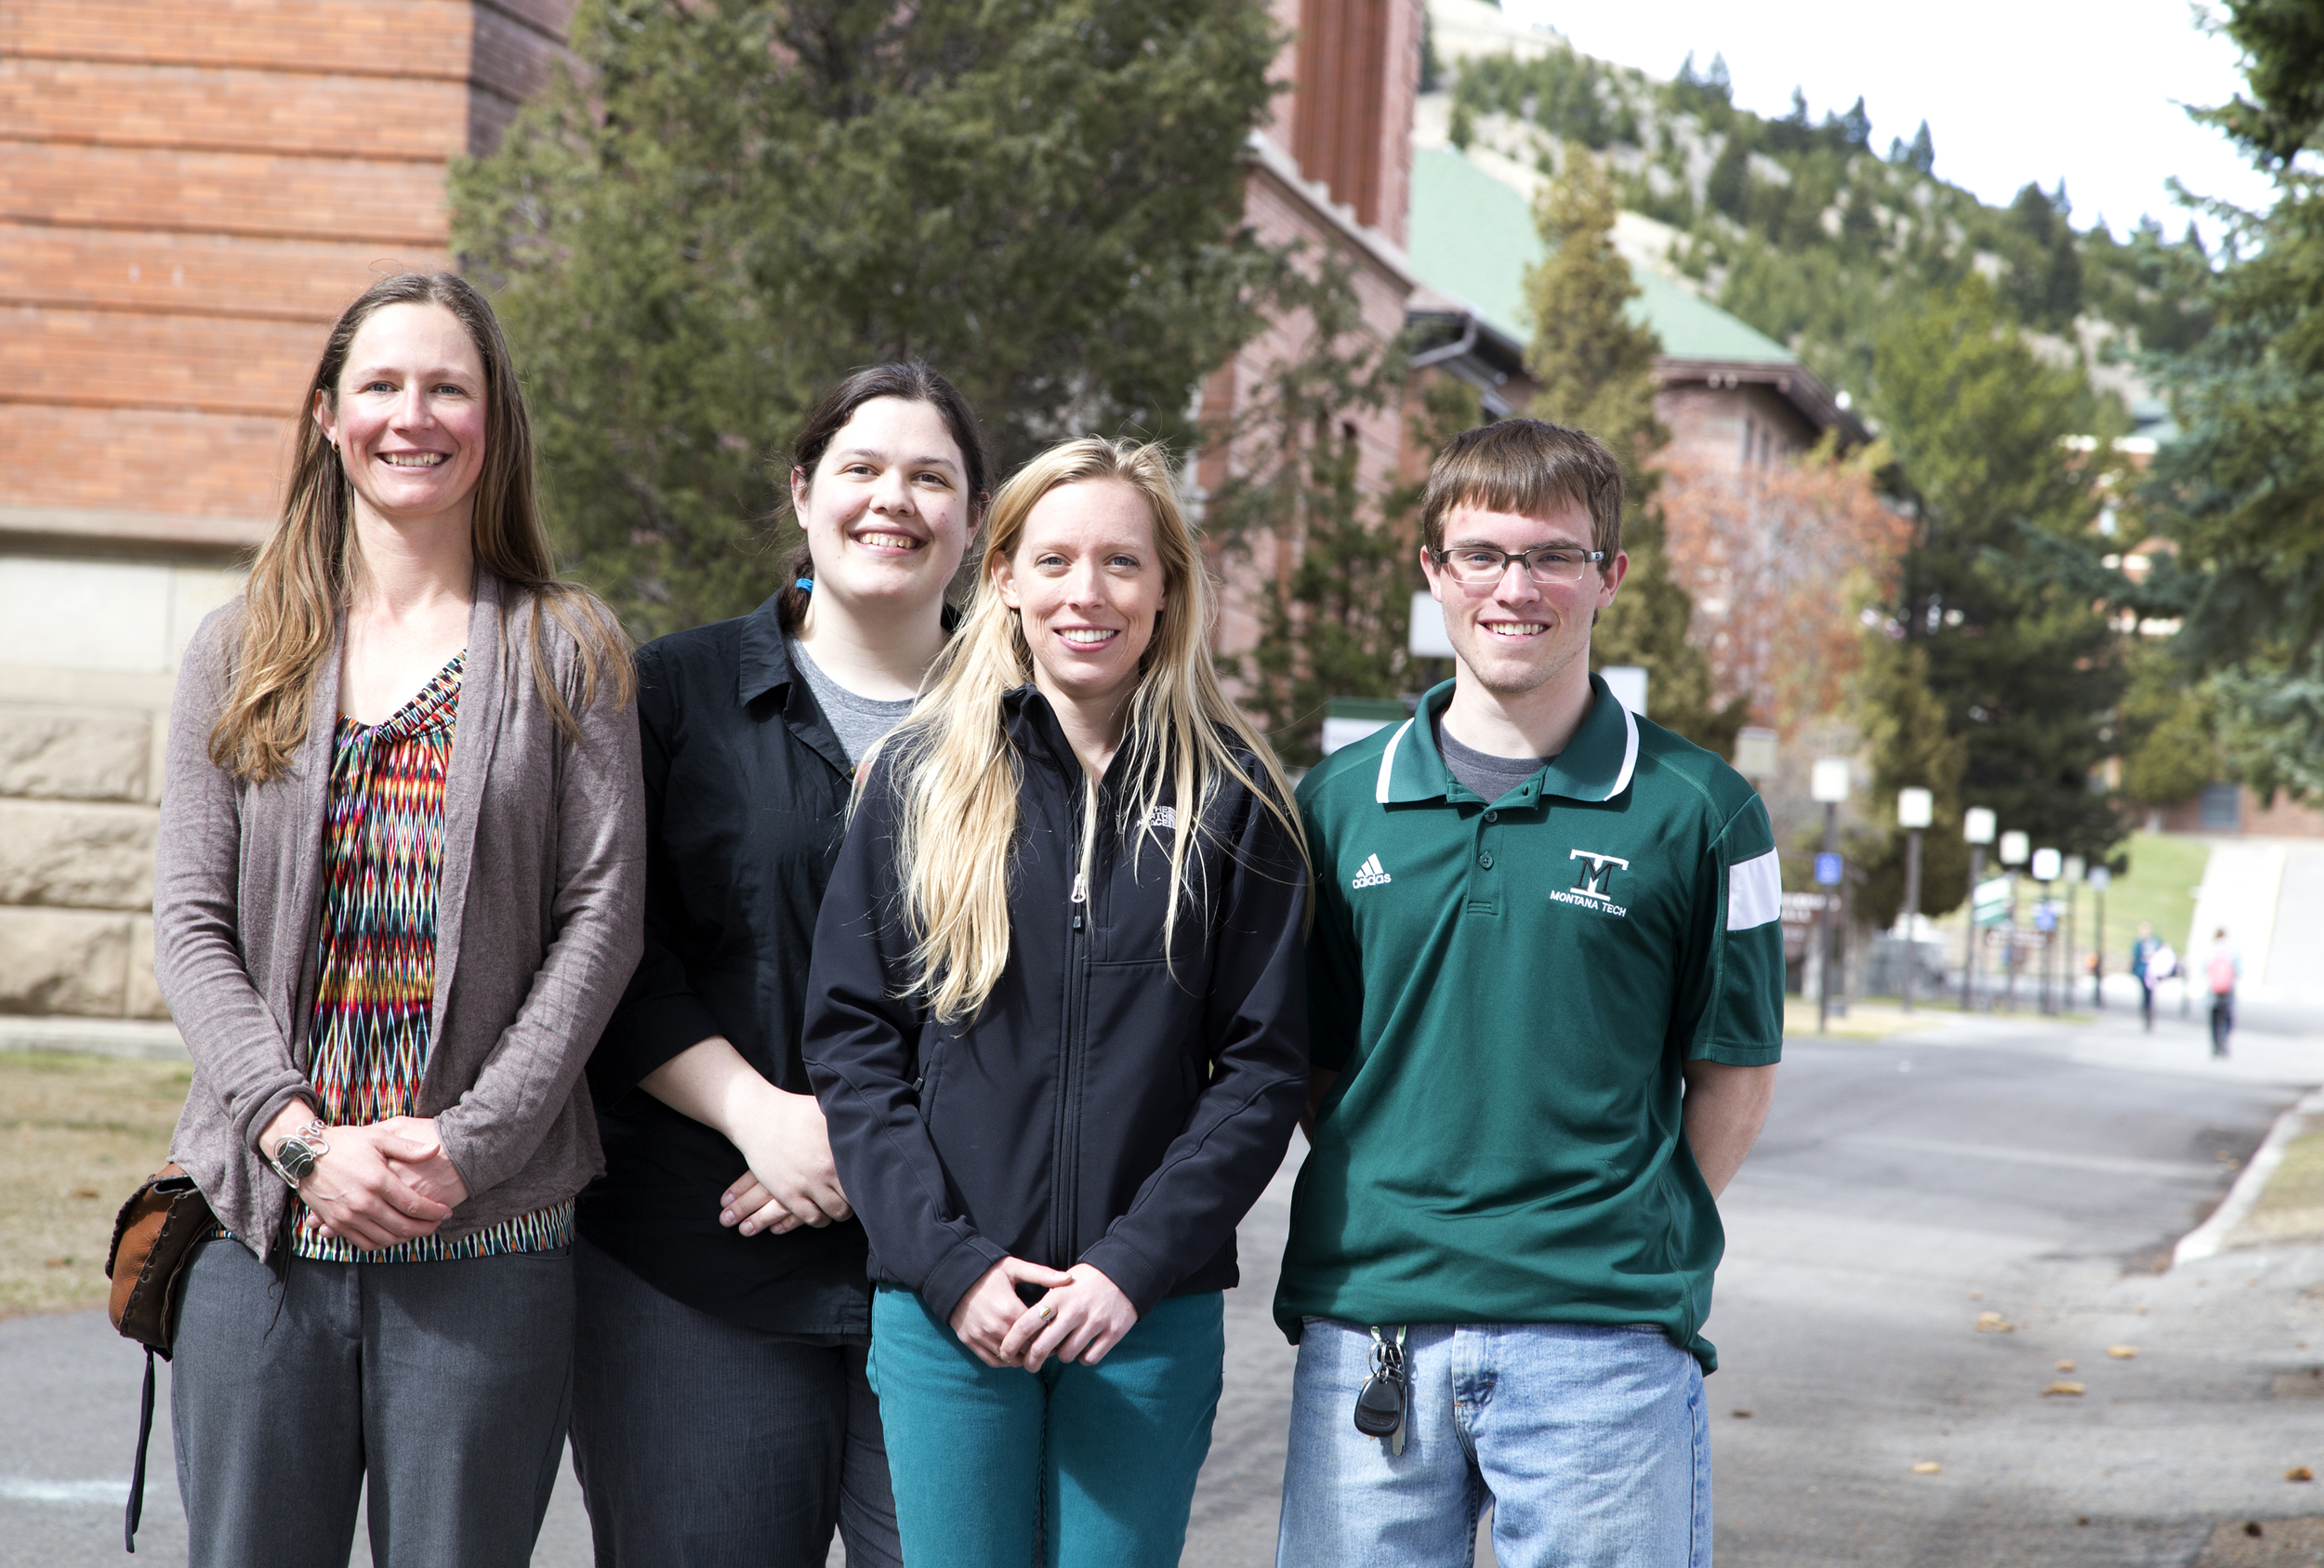 Left to right: Dr. Alysia Cox; Georgia Dahlquist,   MS Geochemistry;   Renee Schmidt, MS Geochemistry; Jordan Foster, undergraduate research fellow.  Not pictured: McKenzie Dillard, undergraduate.  Photo taken by David Nolt.